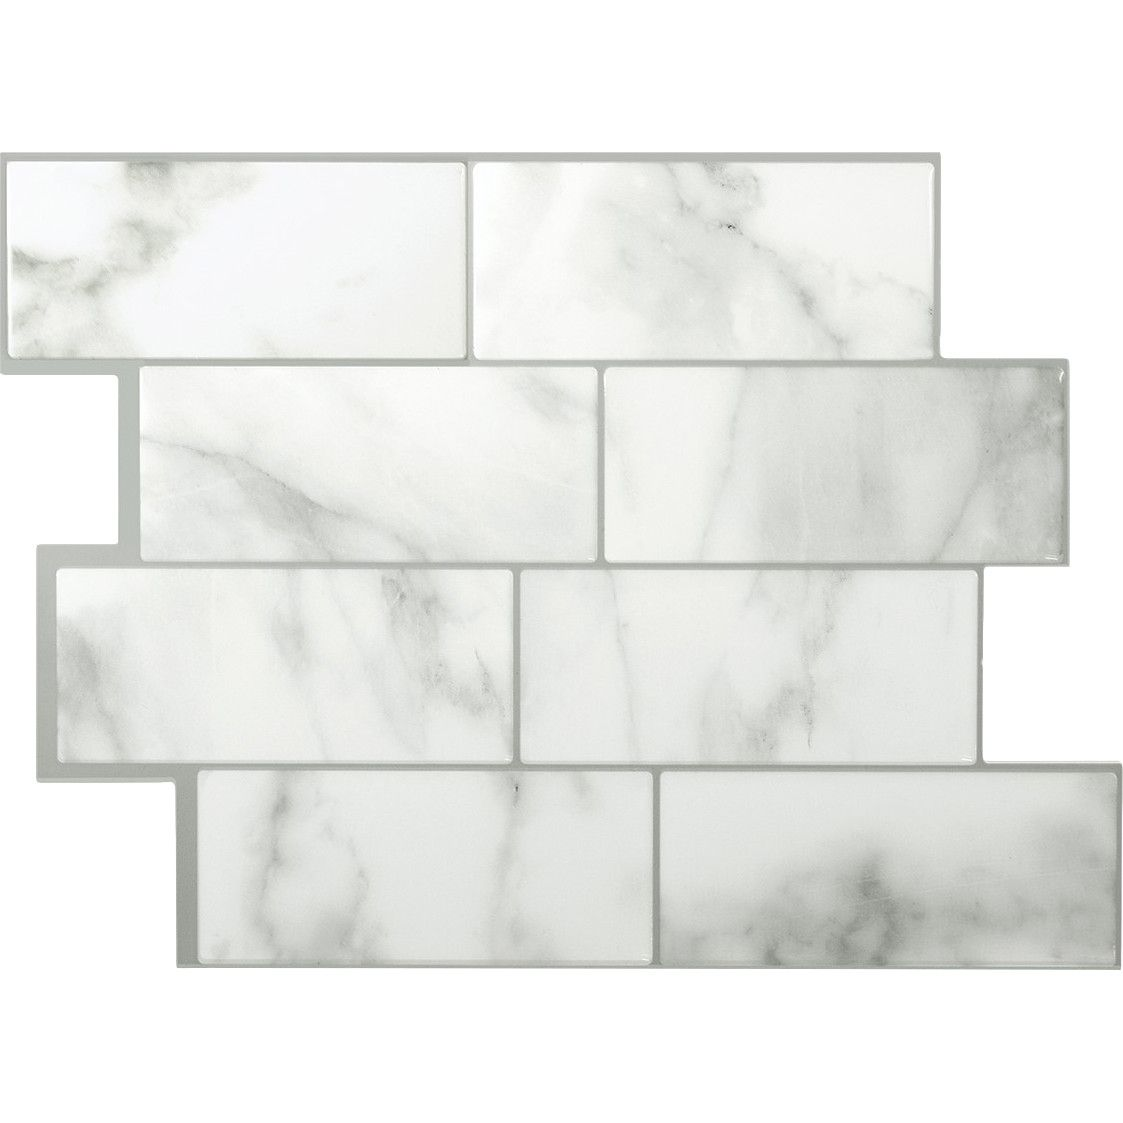 Mosaik metro carrera 1156 x 838 peel stick subway tile in mosaik metro carrera 1156 x 838 peel stick subway tile in white and gray dailygadgetfo Gallery